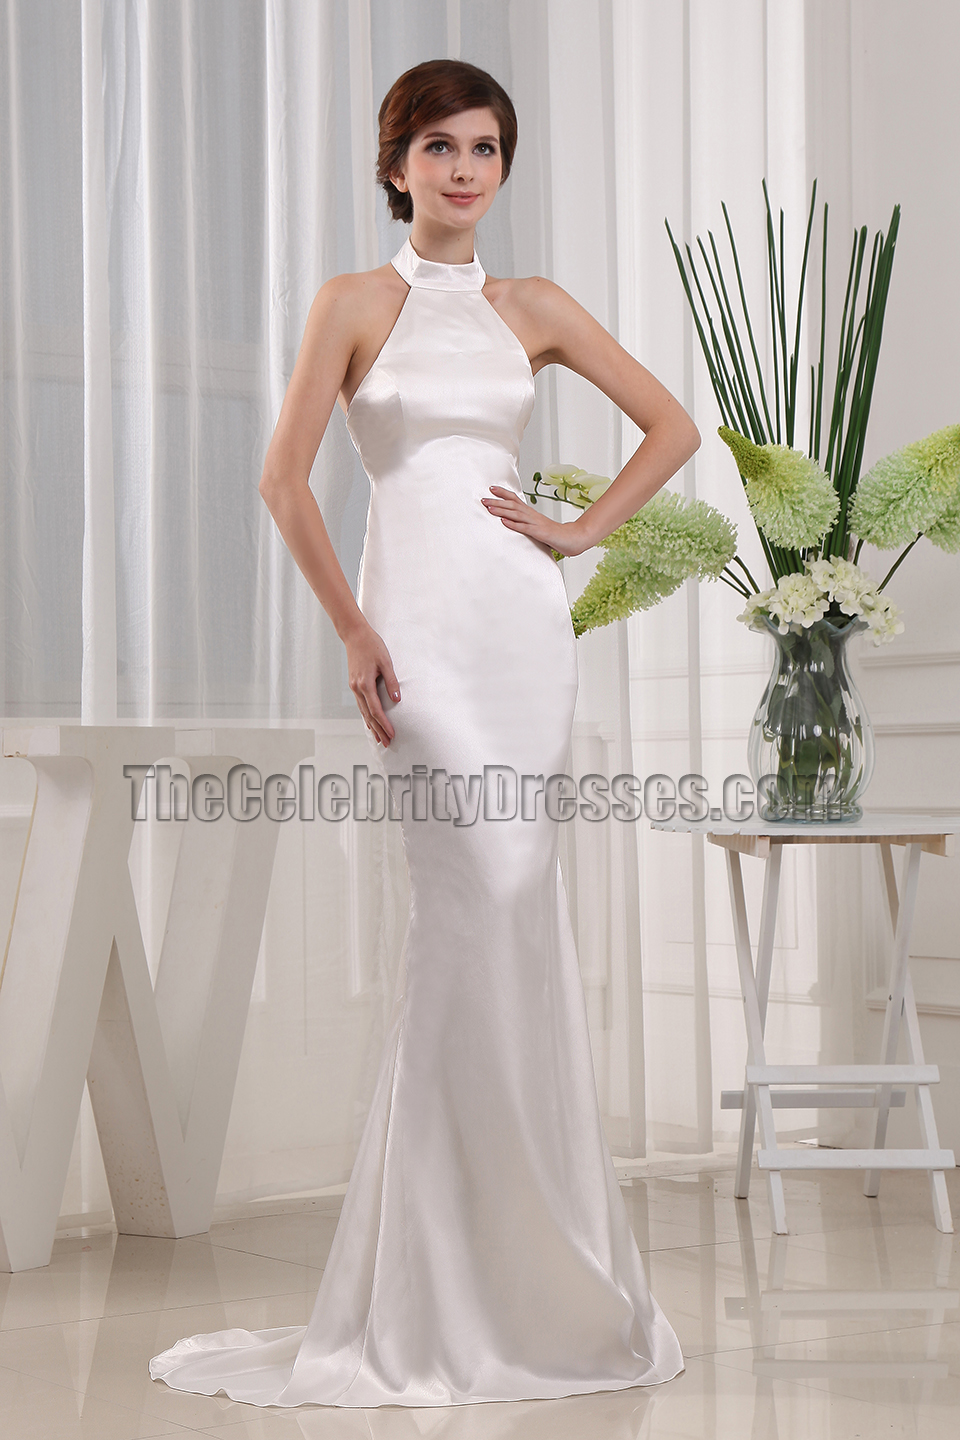 Simple mermaid halter wedding dress bridal gown thecelebritydresses junglespirit